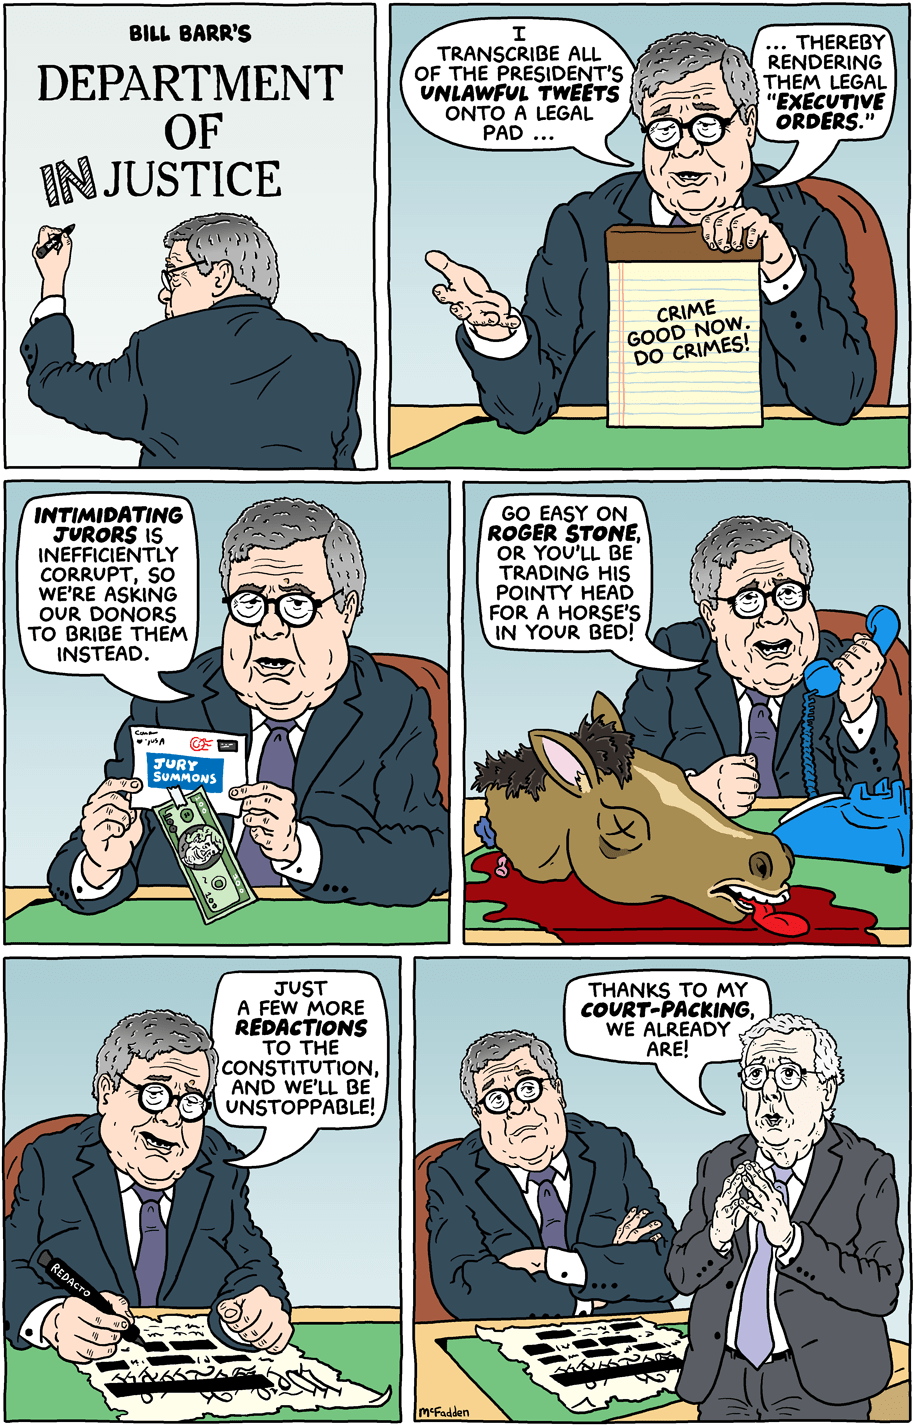 Cartoon: Bill Barr's department of injustice